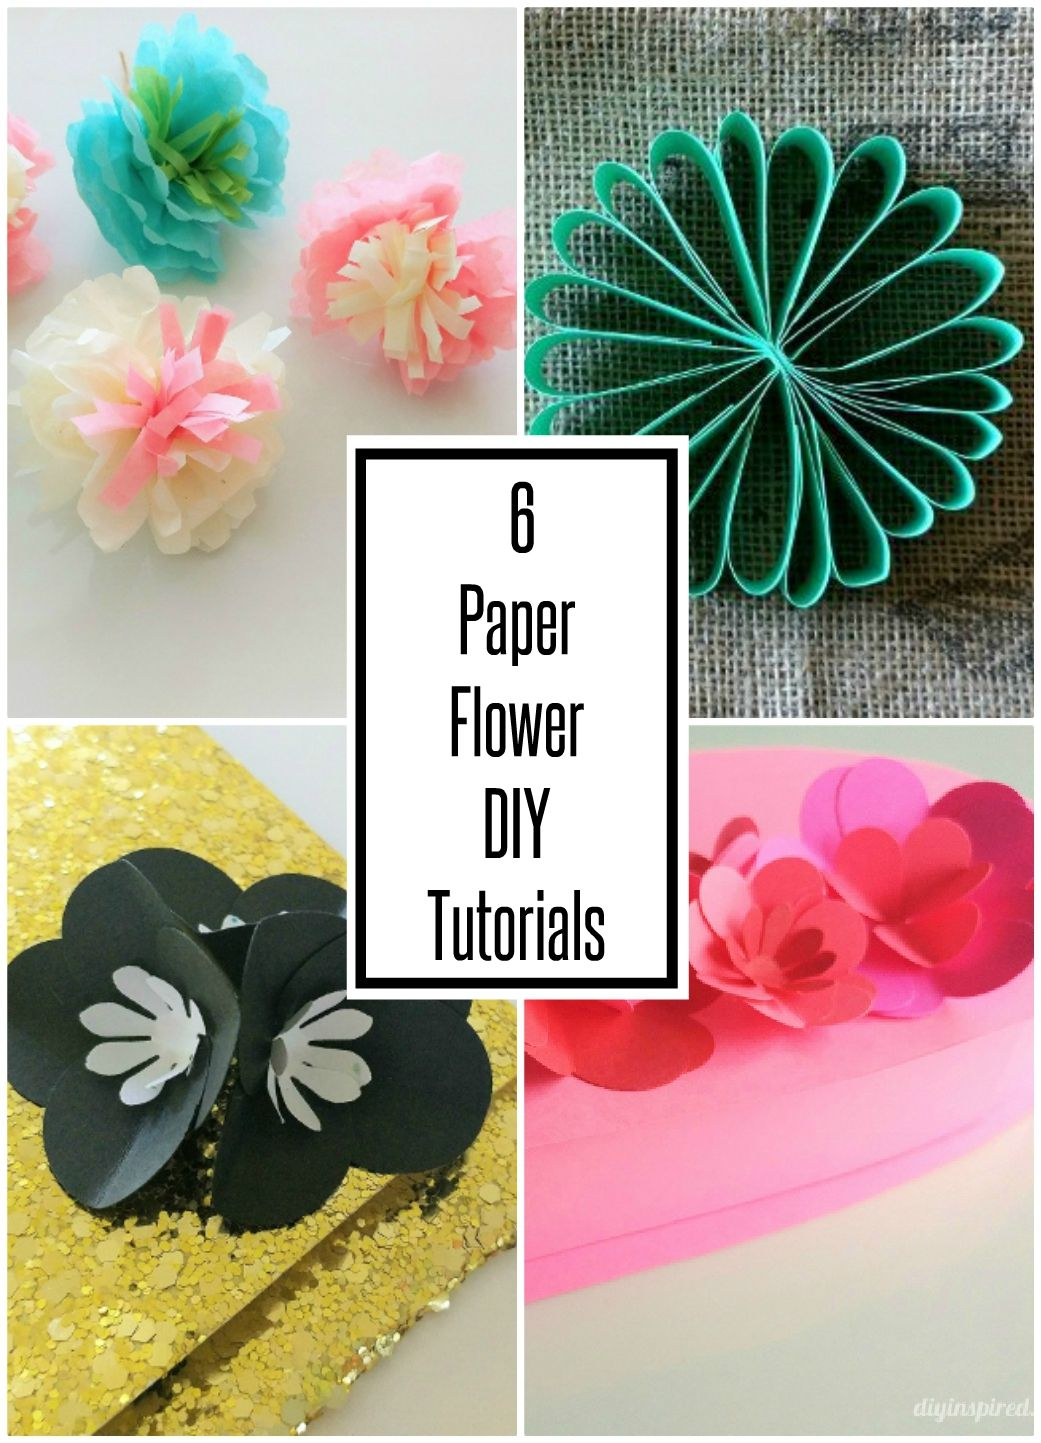 6 Easy Paper Flower Diy Ideas Paper Flowers Paper Flowers Diy